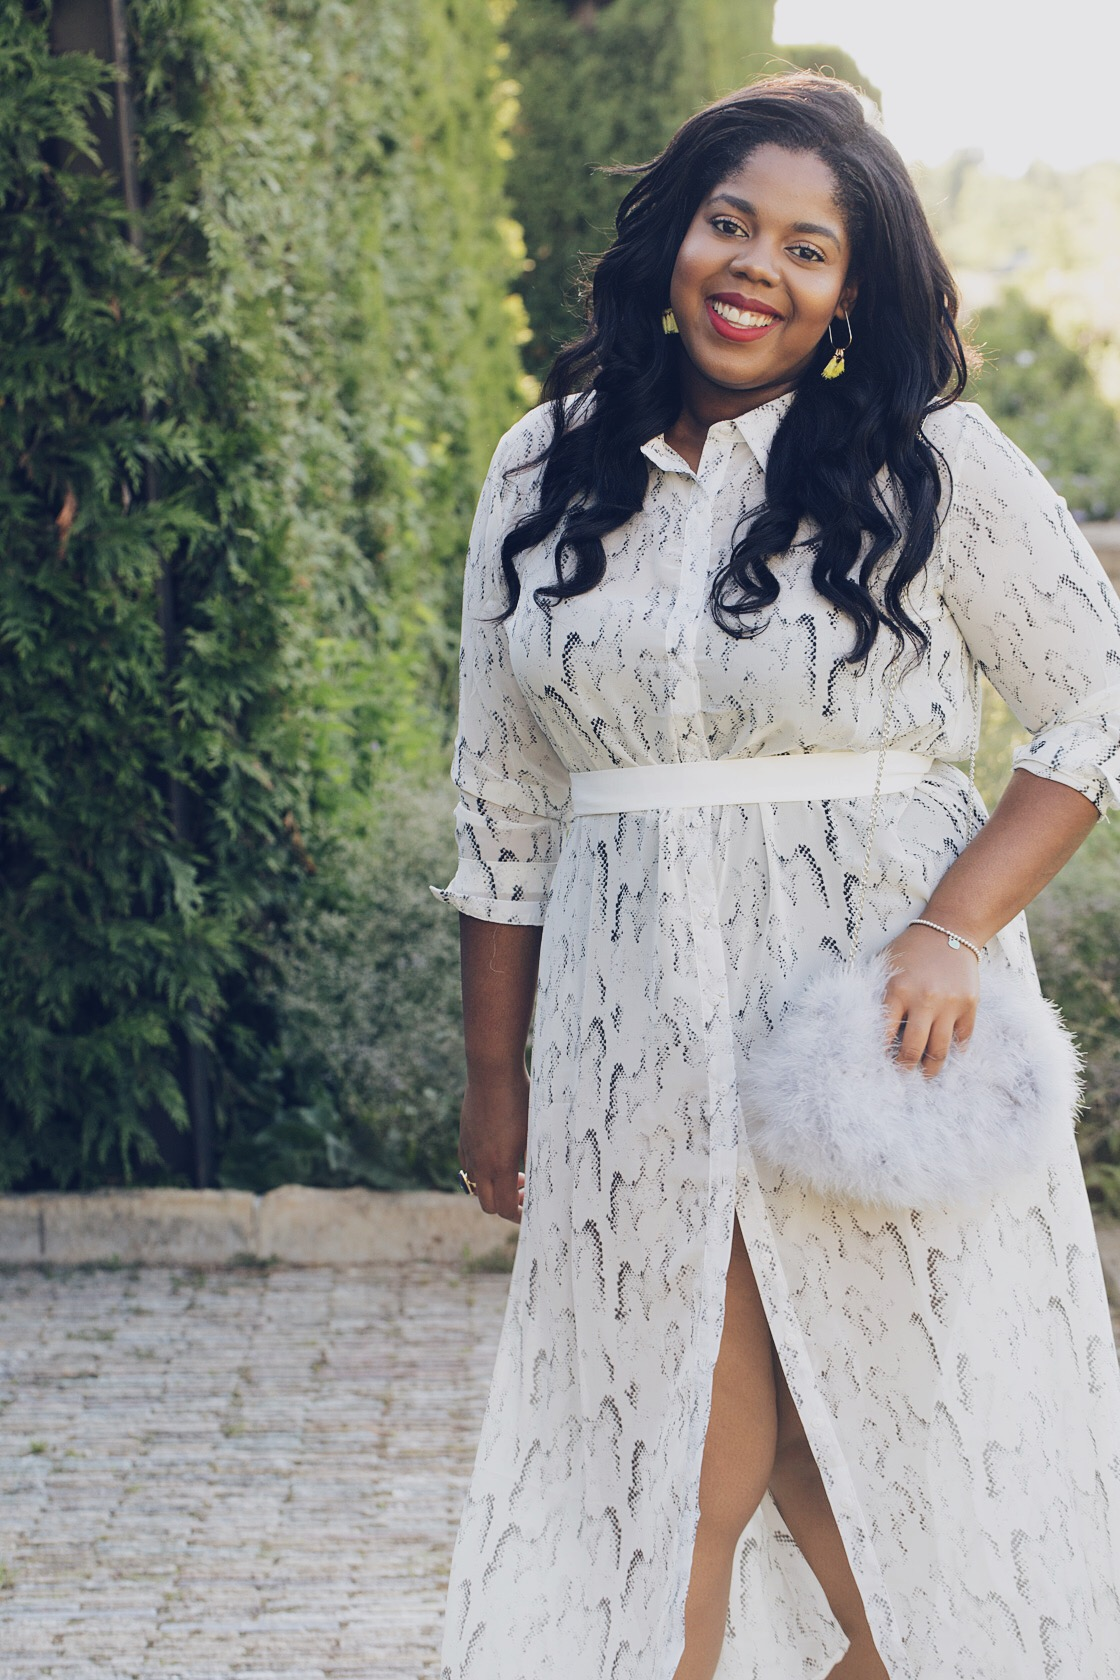 That Hayet Rida SimplyBe Dressobsessed Chicago Plus Size Blogger Influencer 3.jpeg